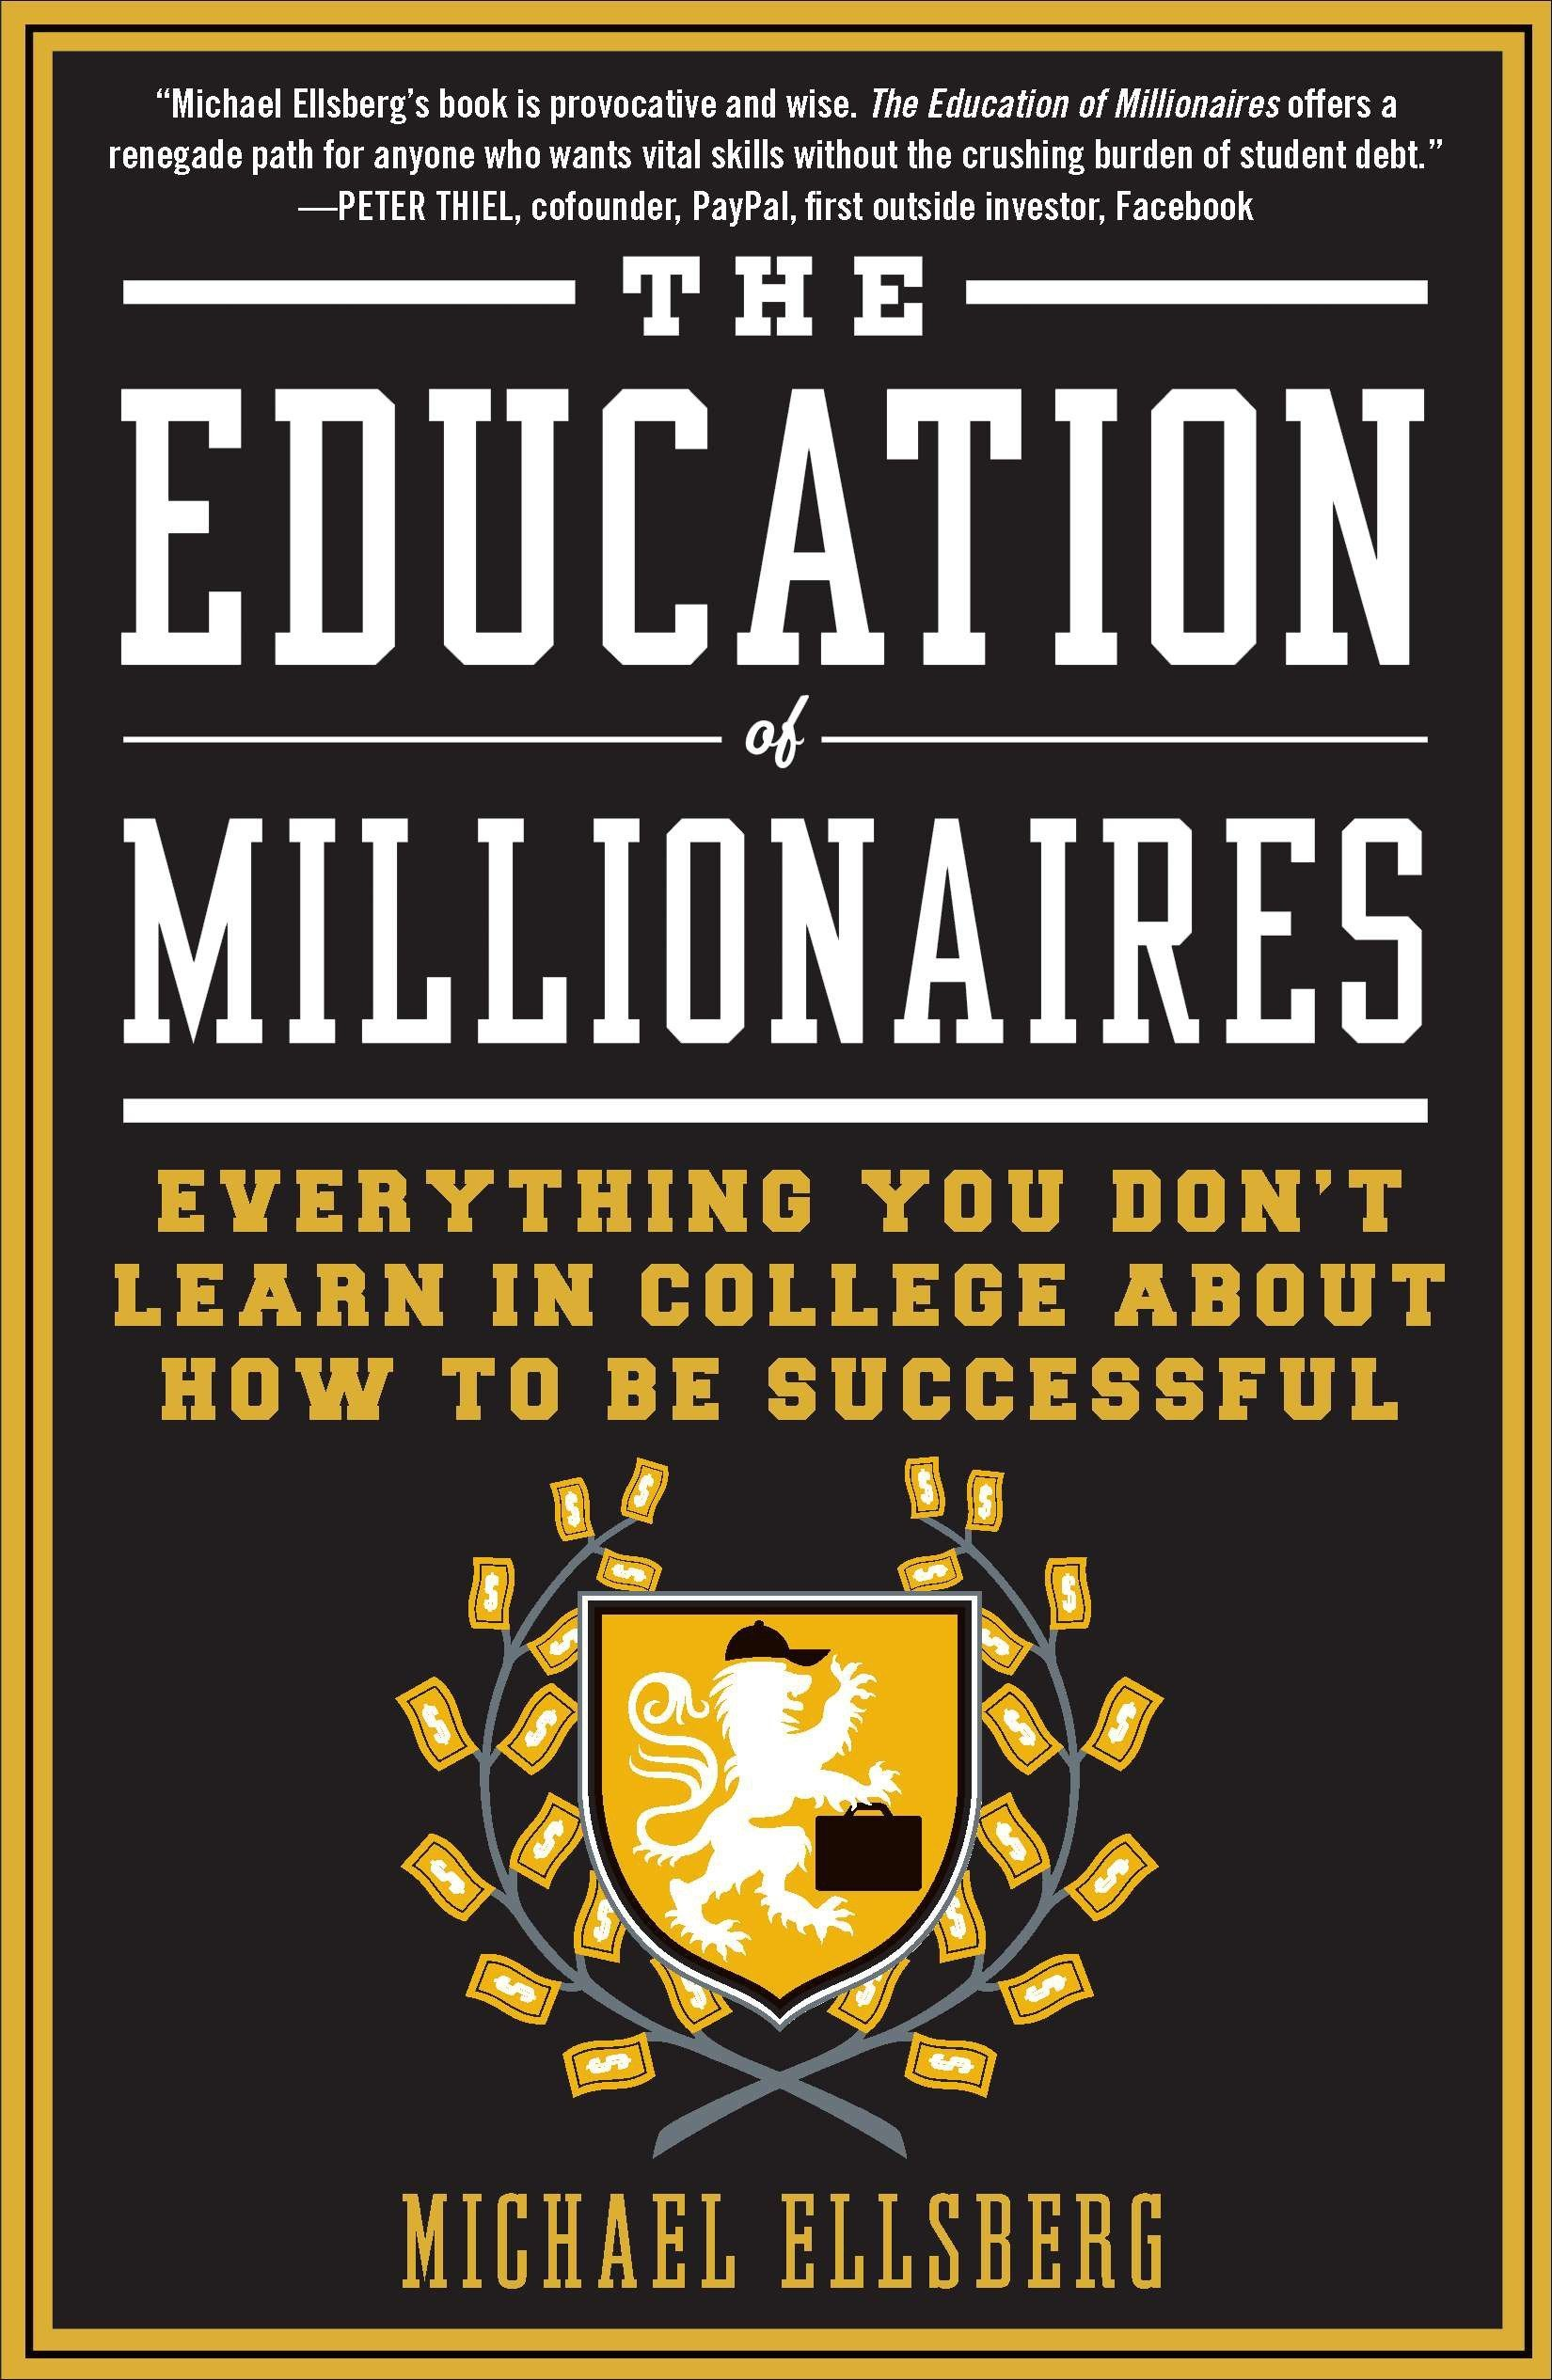 The Education Of Millionaires Michael Ellsberg Download